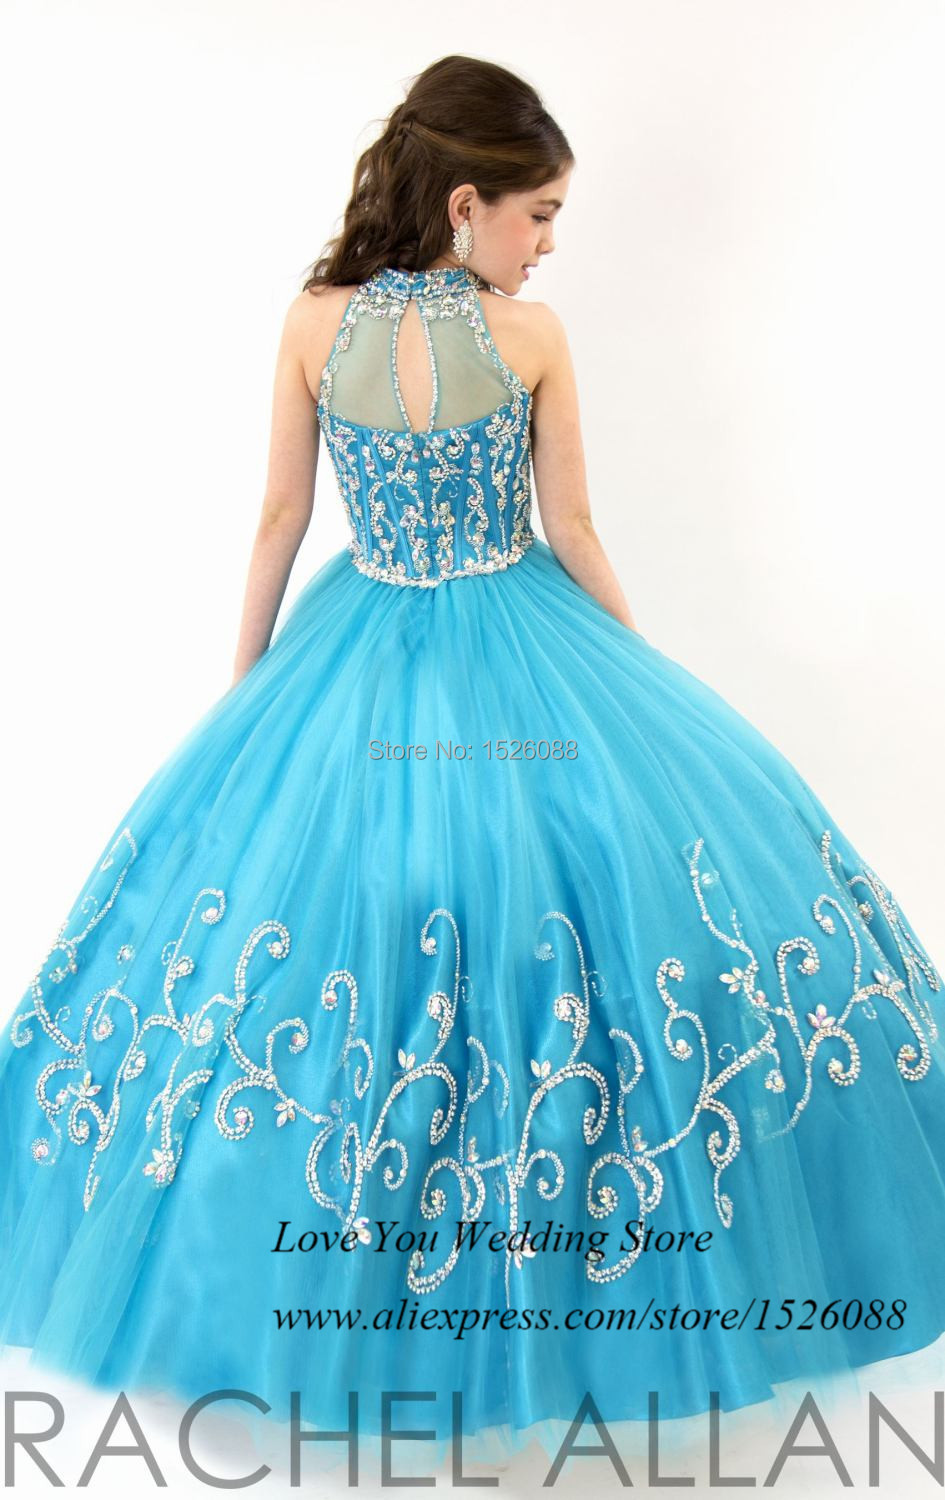 Princess Blue Modest Ball Gown Flower Girl Dresses for Weddings 2015 ...